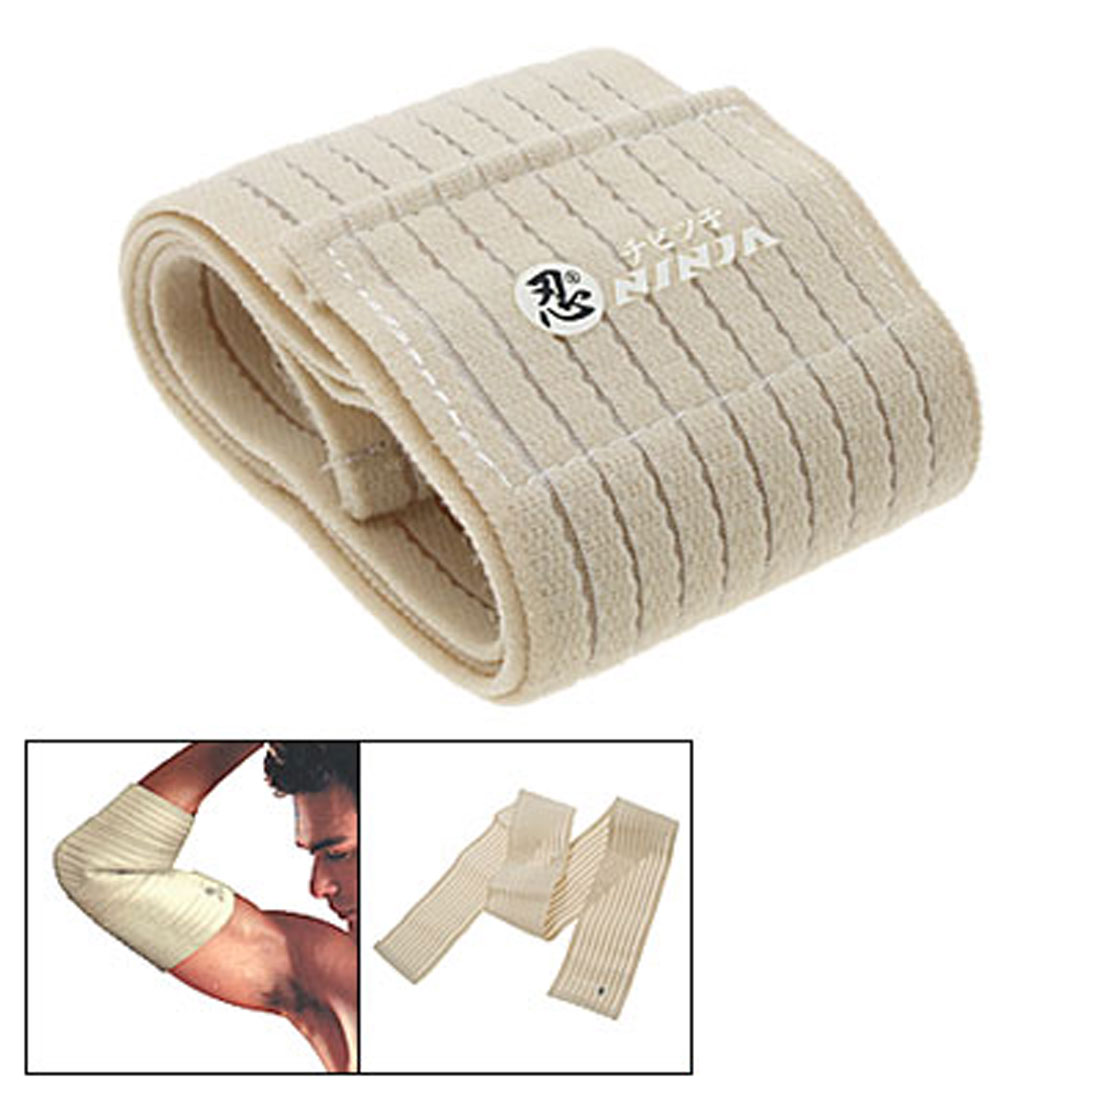 Hook and loop fasteners Elastic Sports Bandage Binder Protector